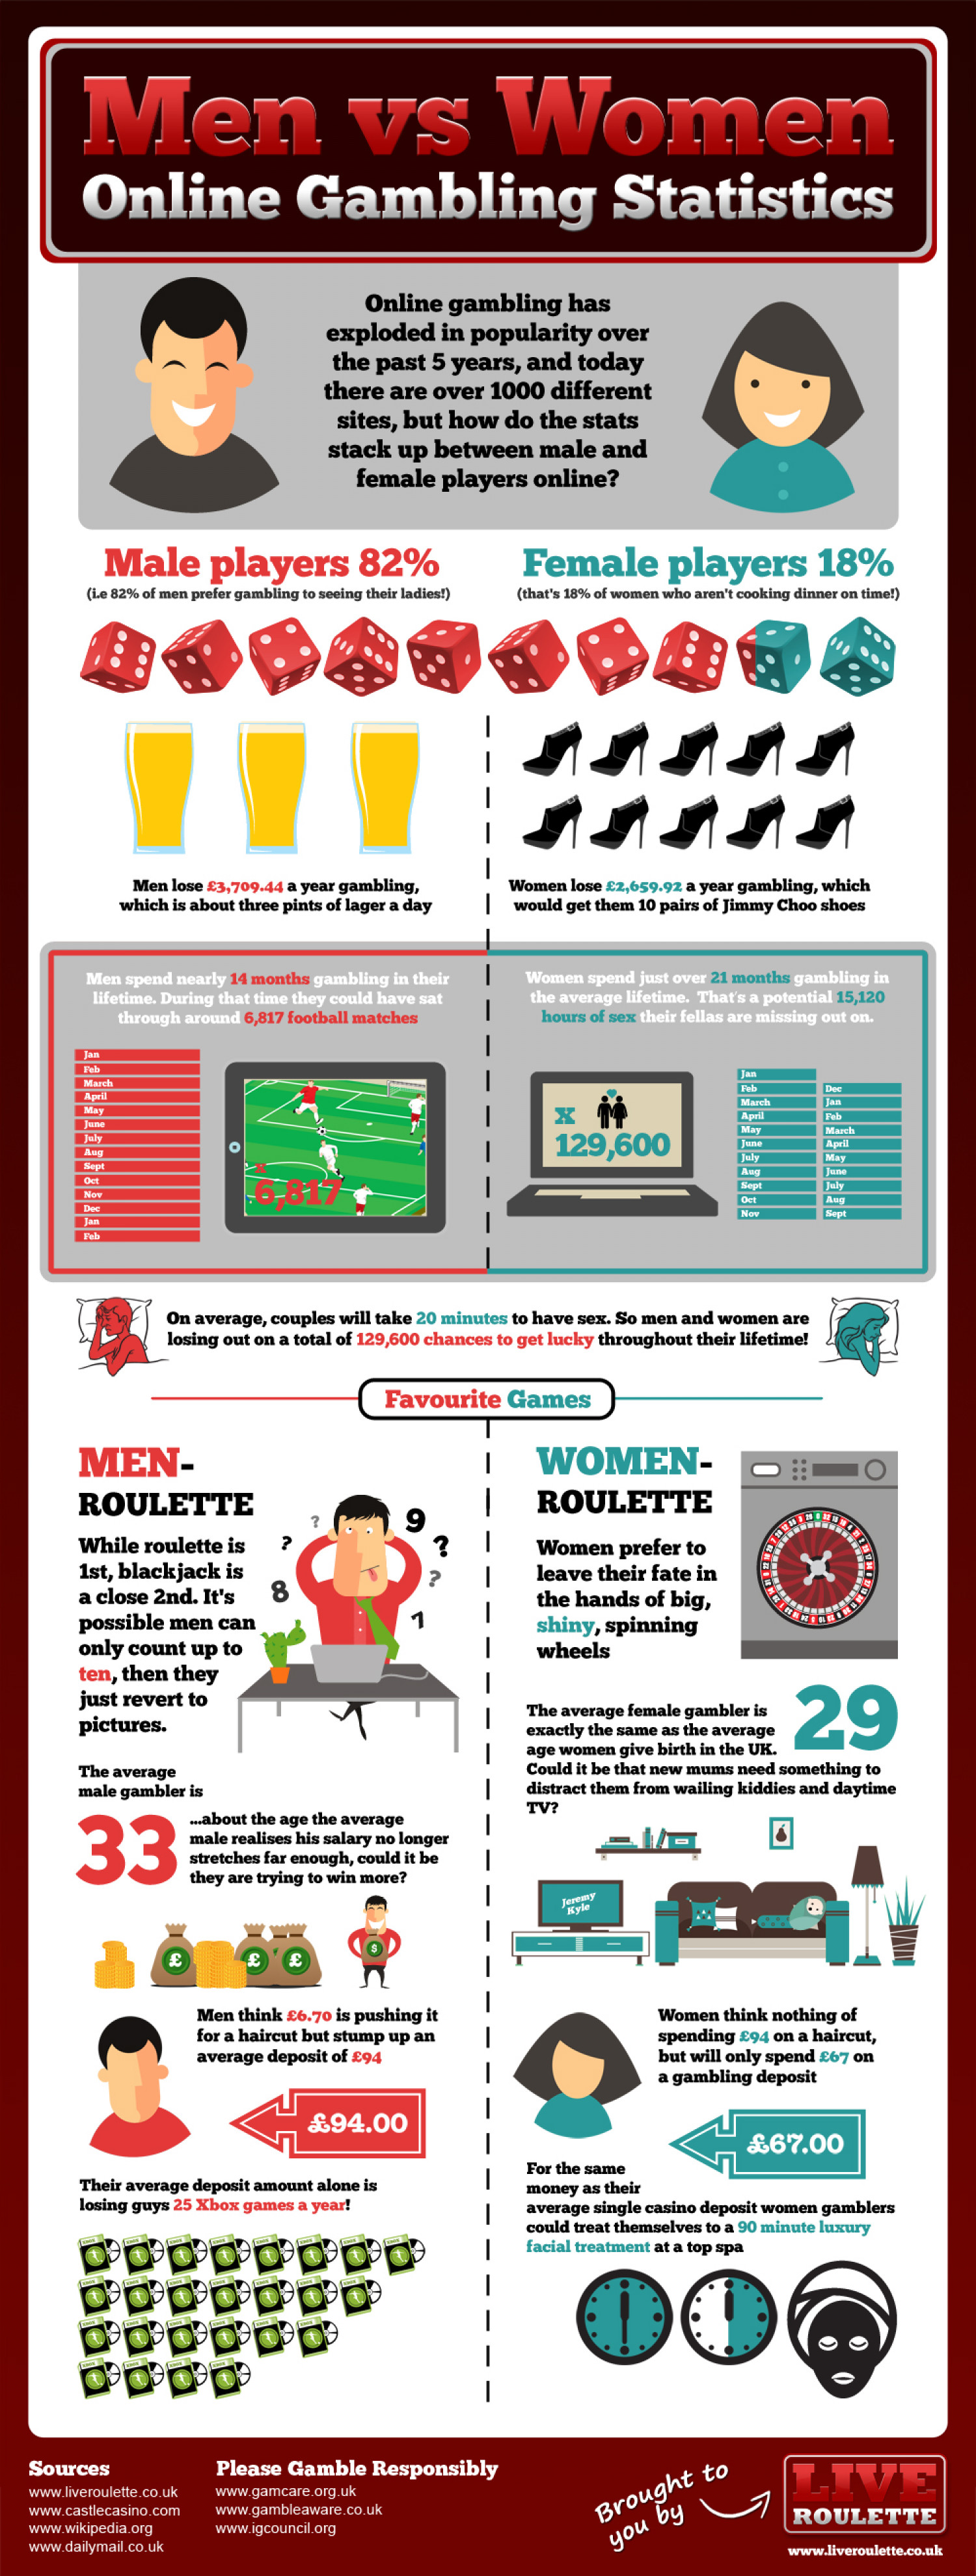 men-vs-women-online-gambling-statistics_